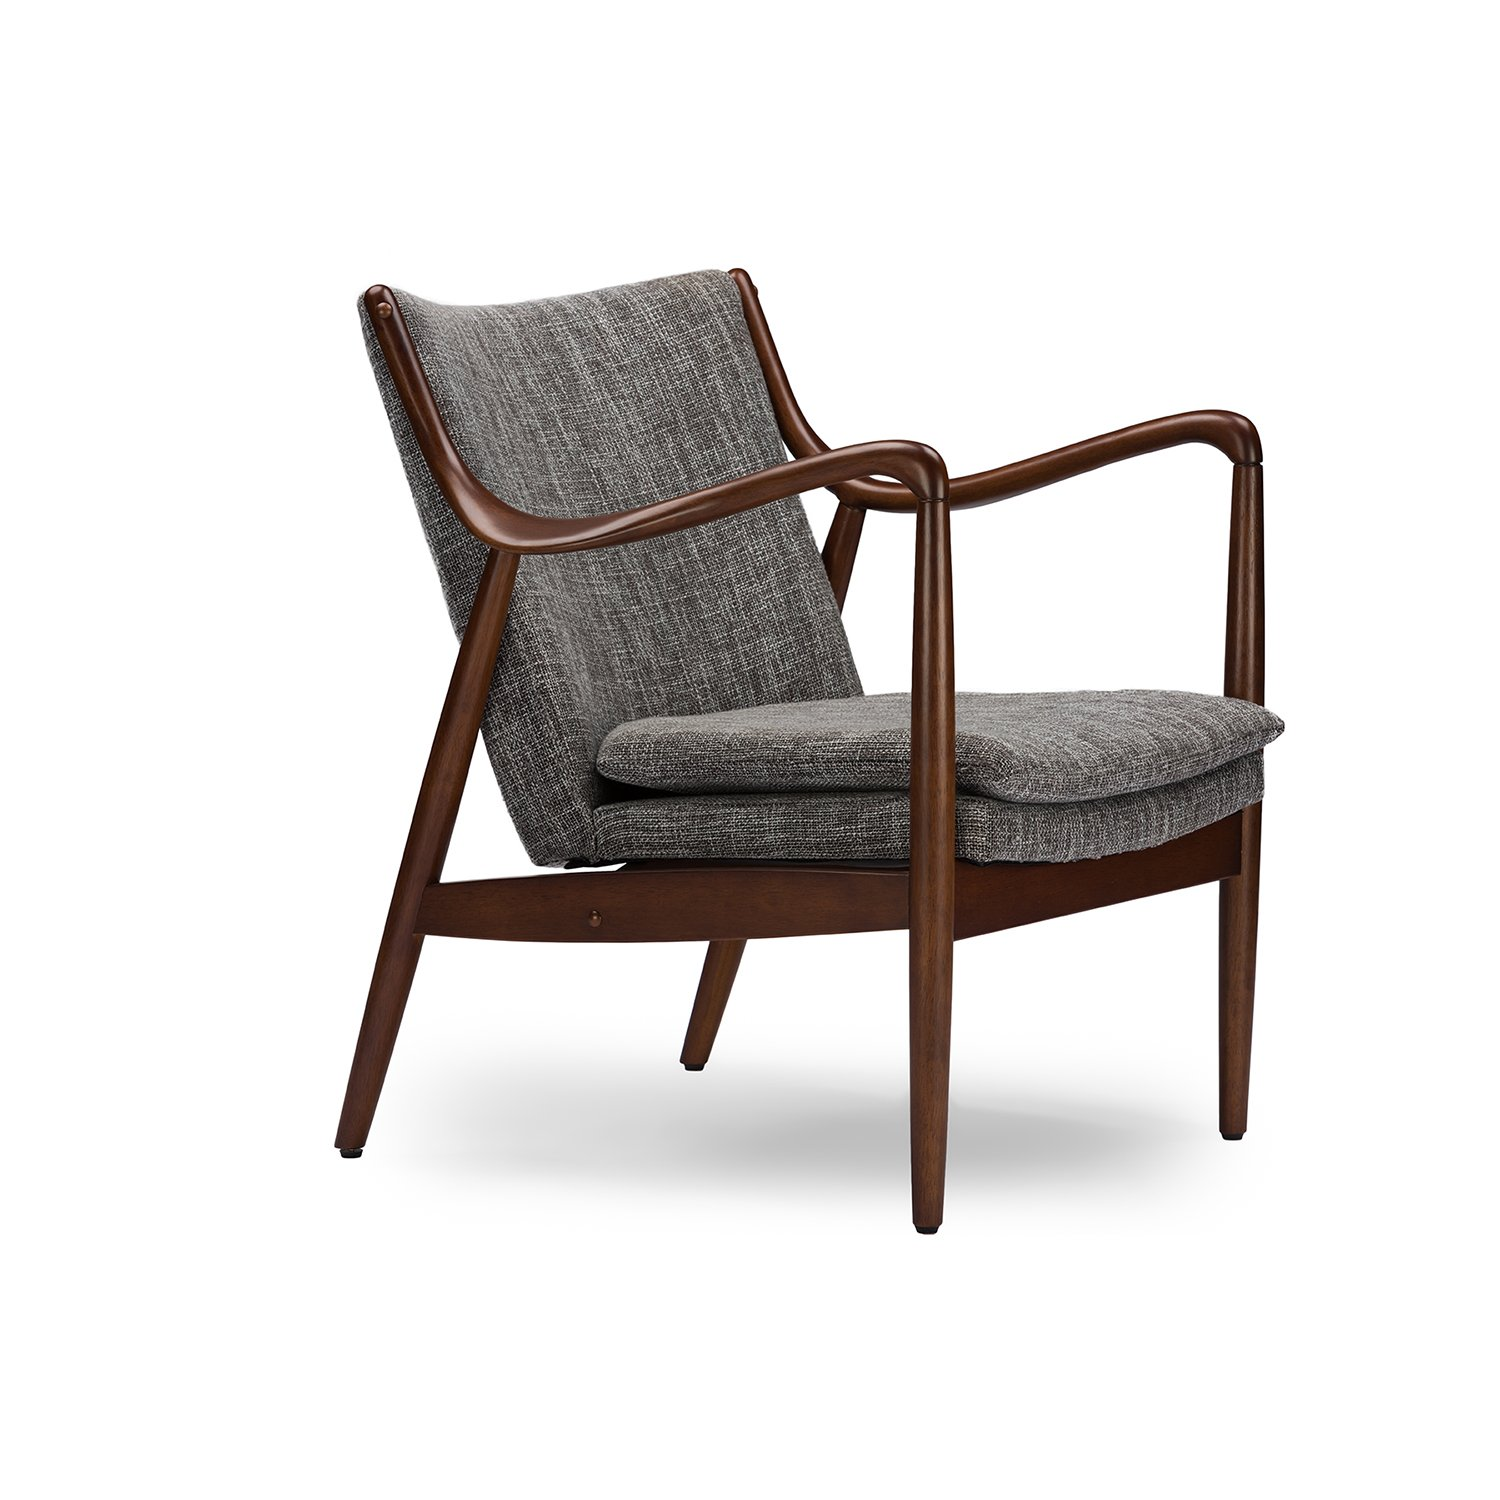 The 5 Best Accent Chairs In 2018: Reviews & Buying Guide 10